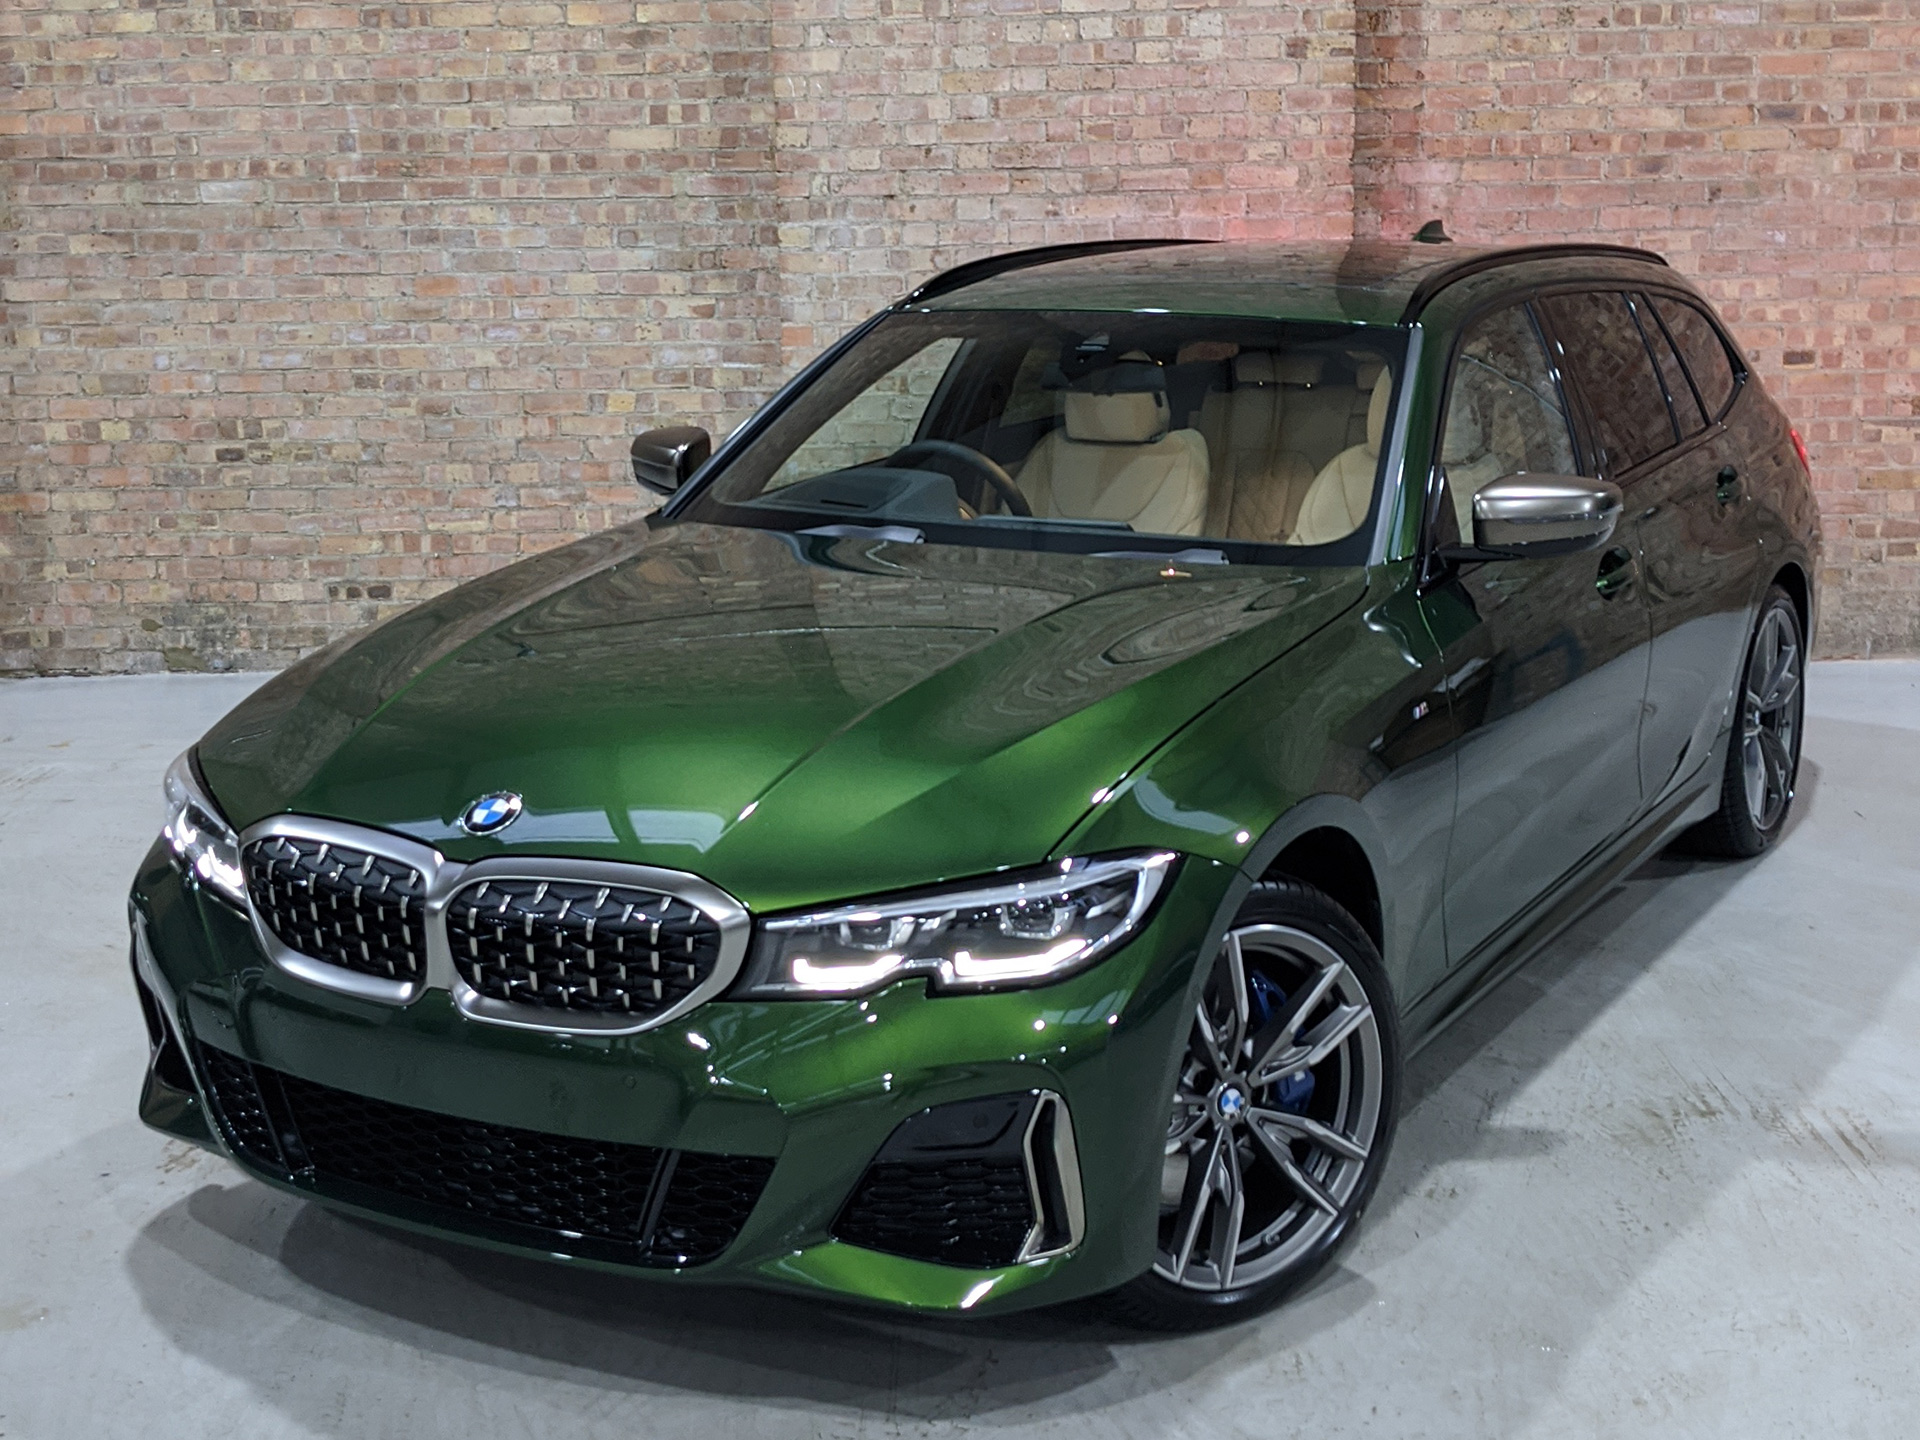 FIRST LOOK: BMW M340i Touring in Verde Ermes